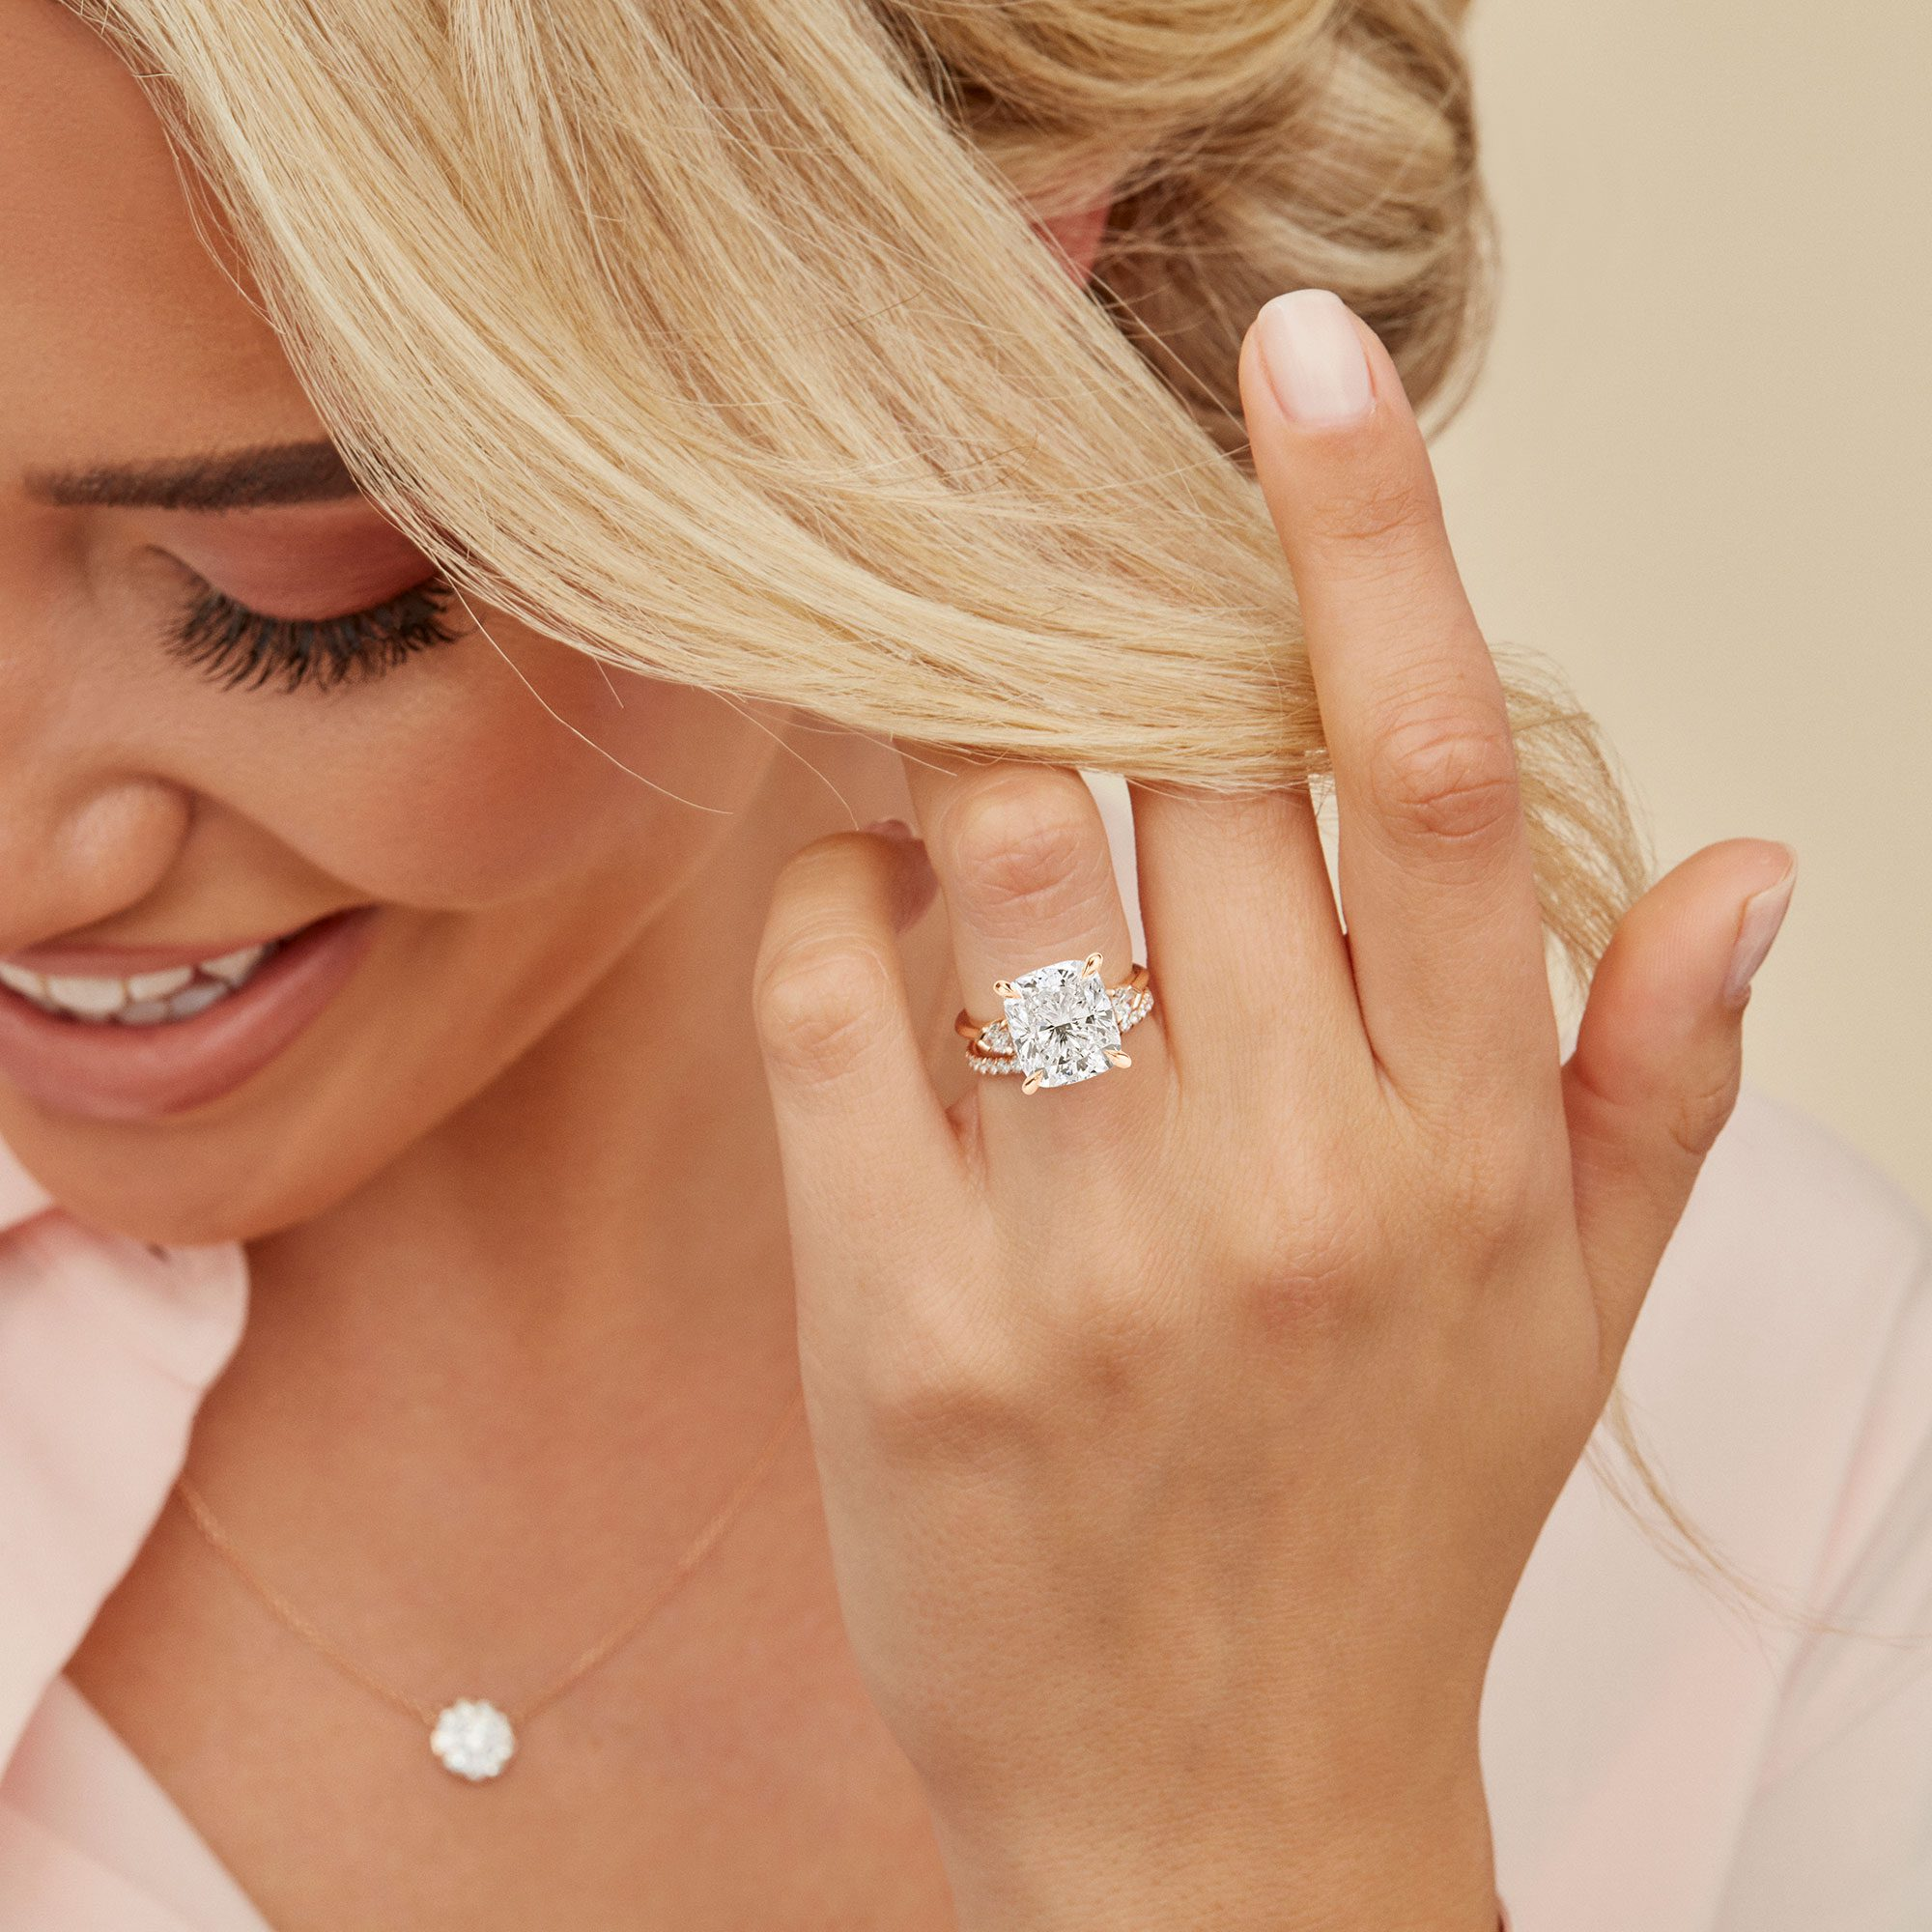 Claire Three Stone Cushion Cut Lab Grown Diamond Engagement Ring on Hand from Oui